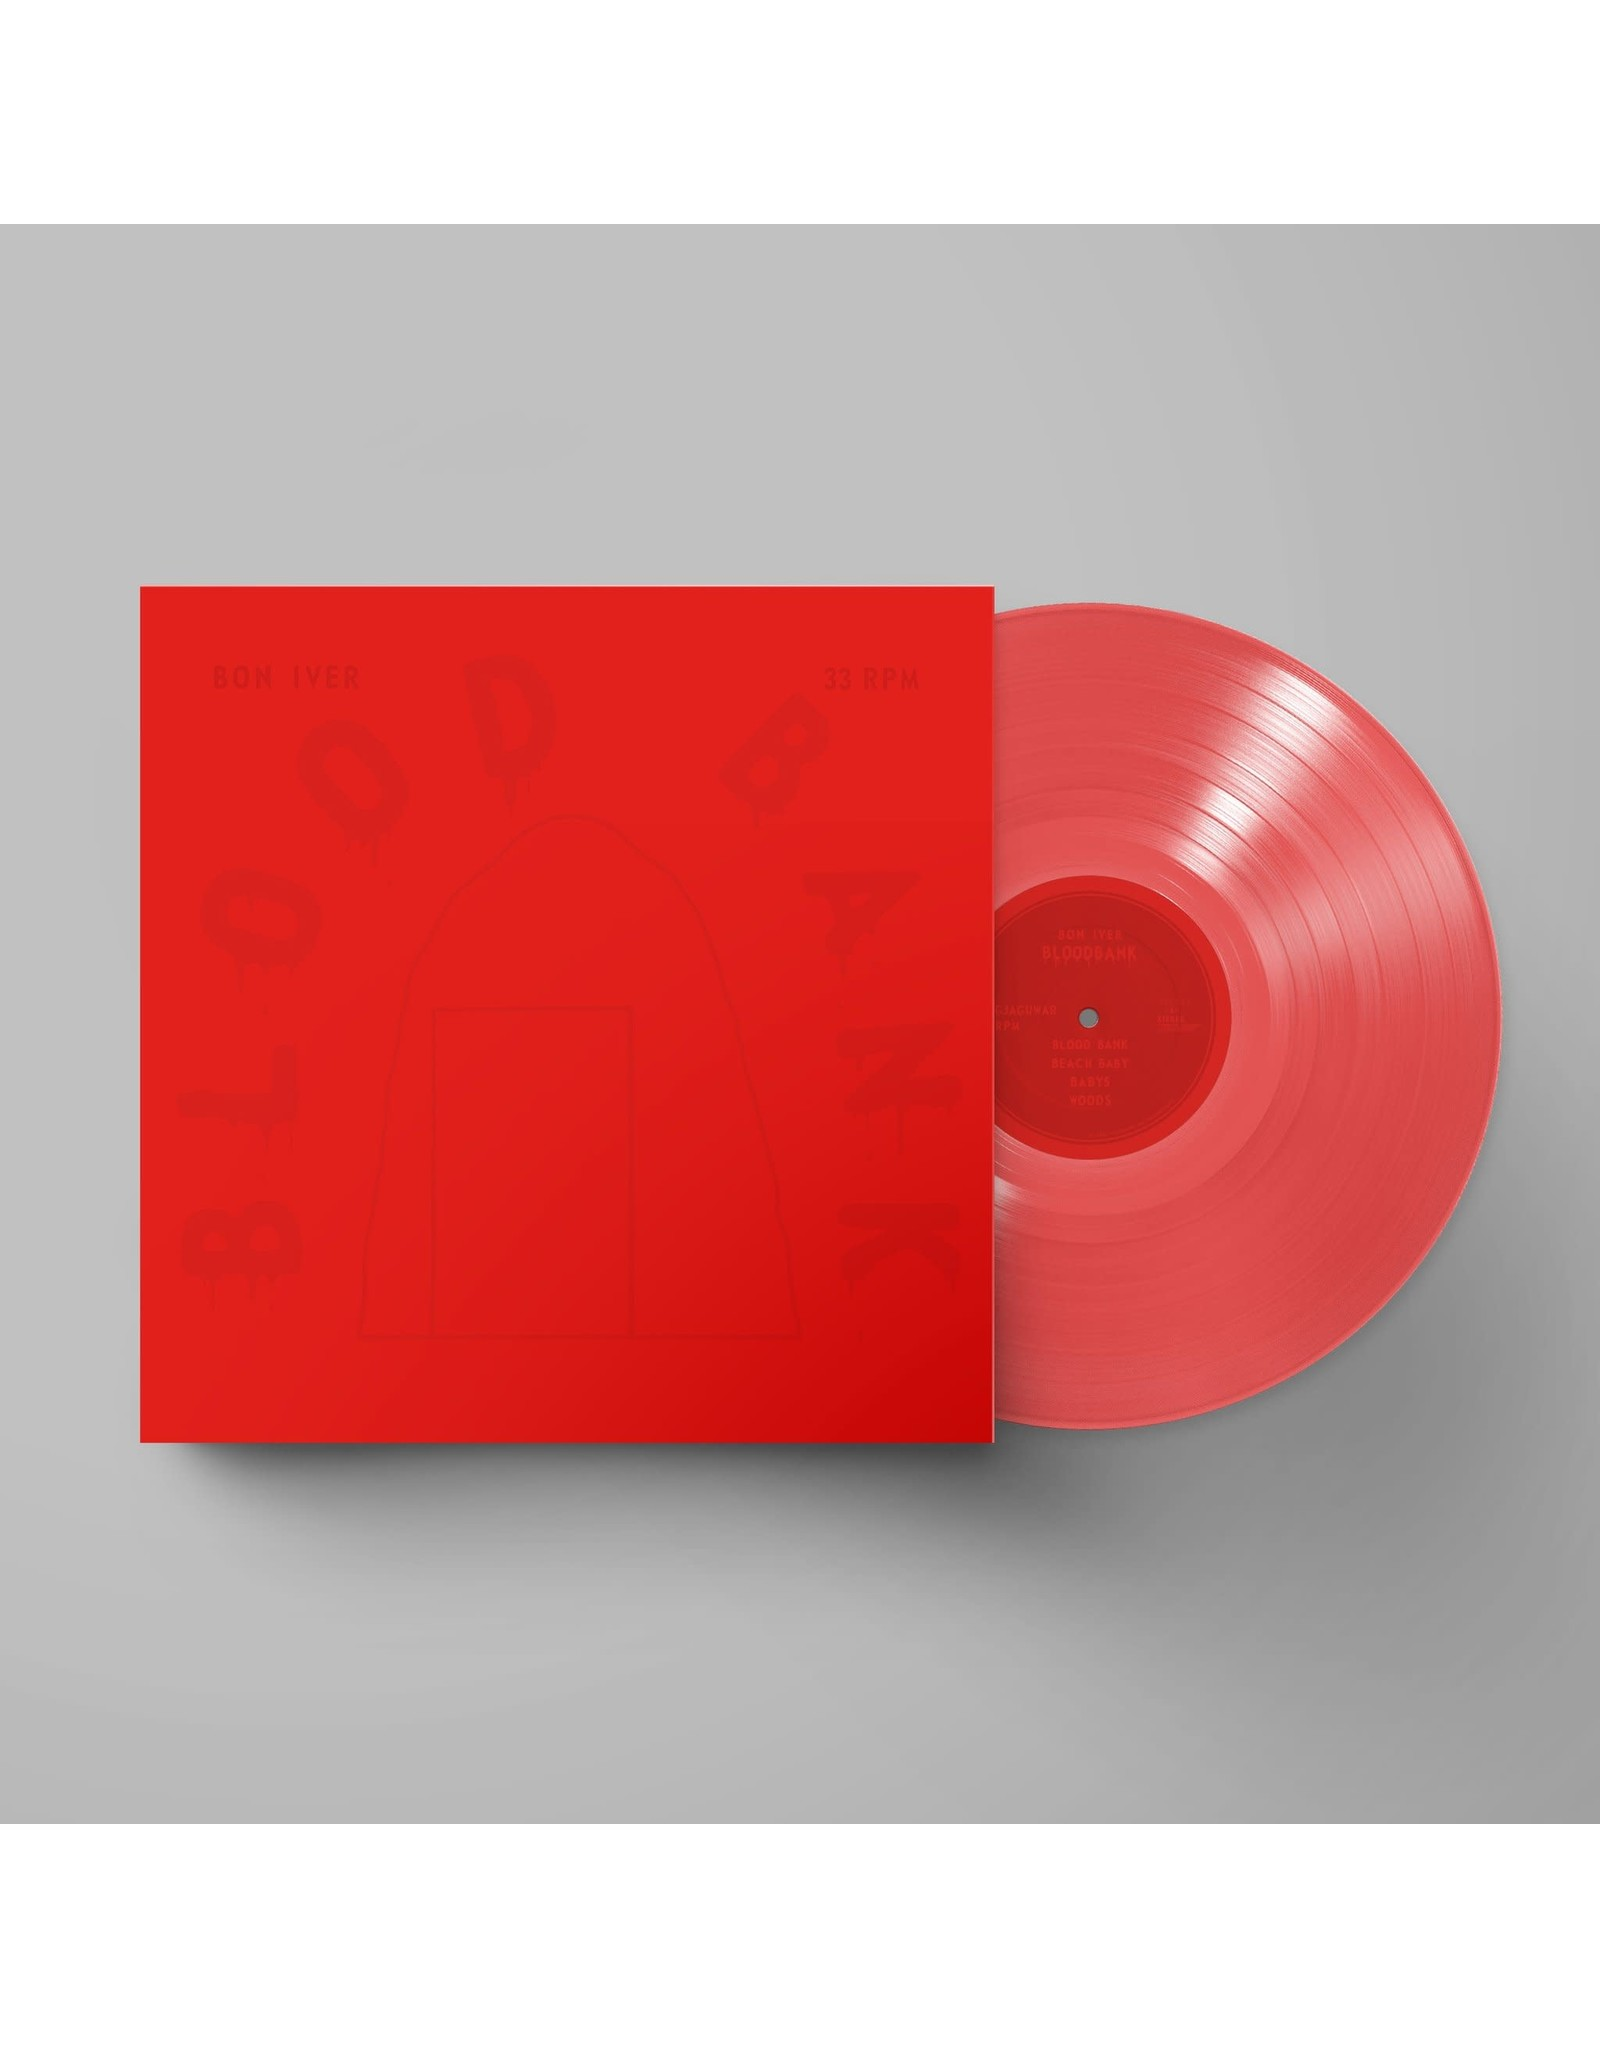 Bon Iver - Blood Bank EP (10th Anniversary Red Vinyl)